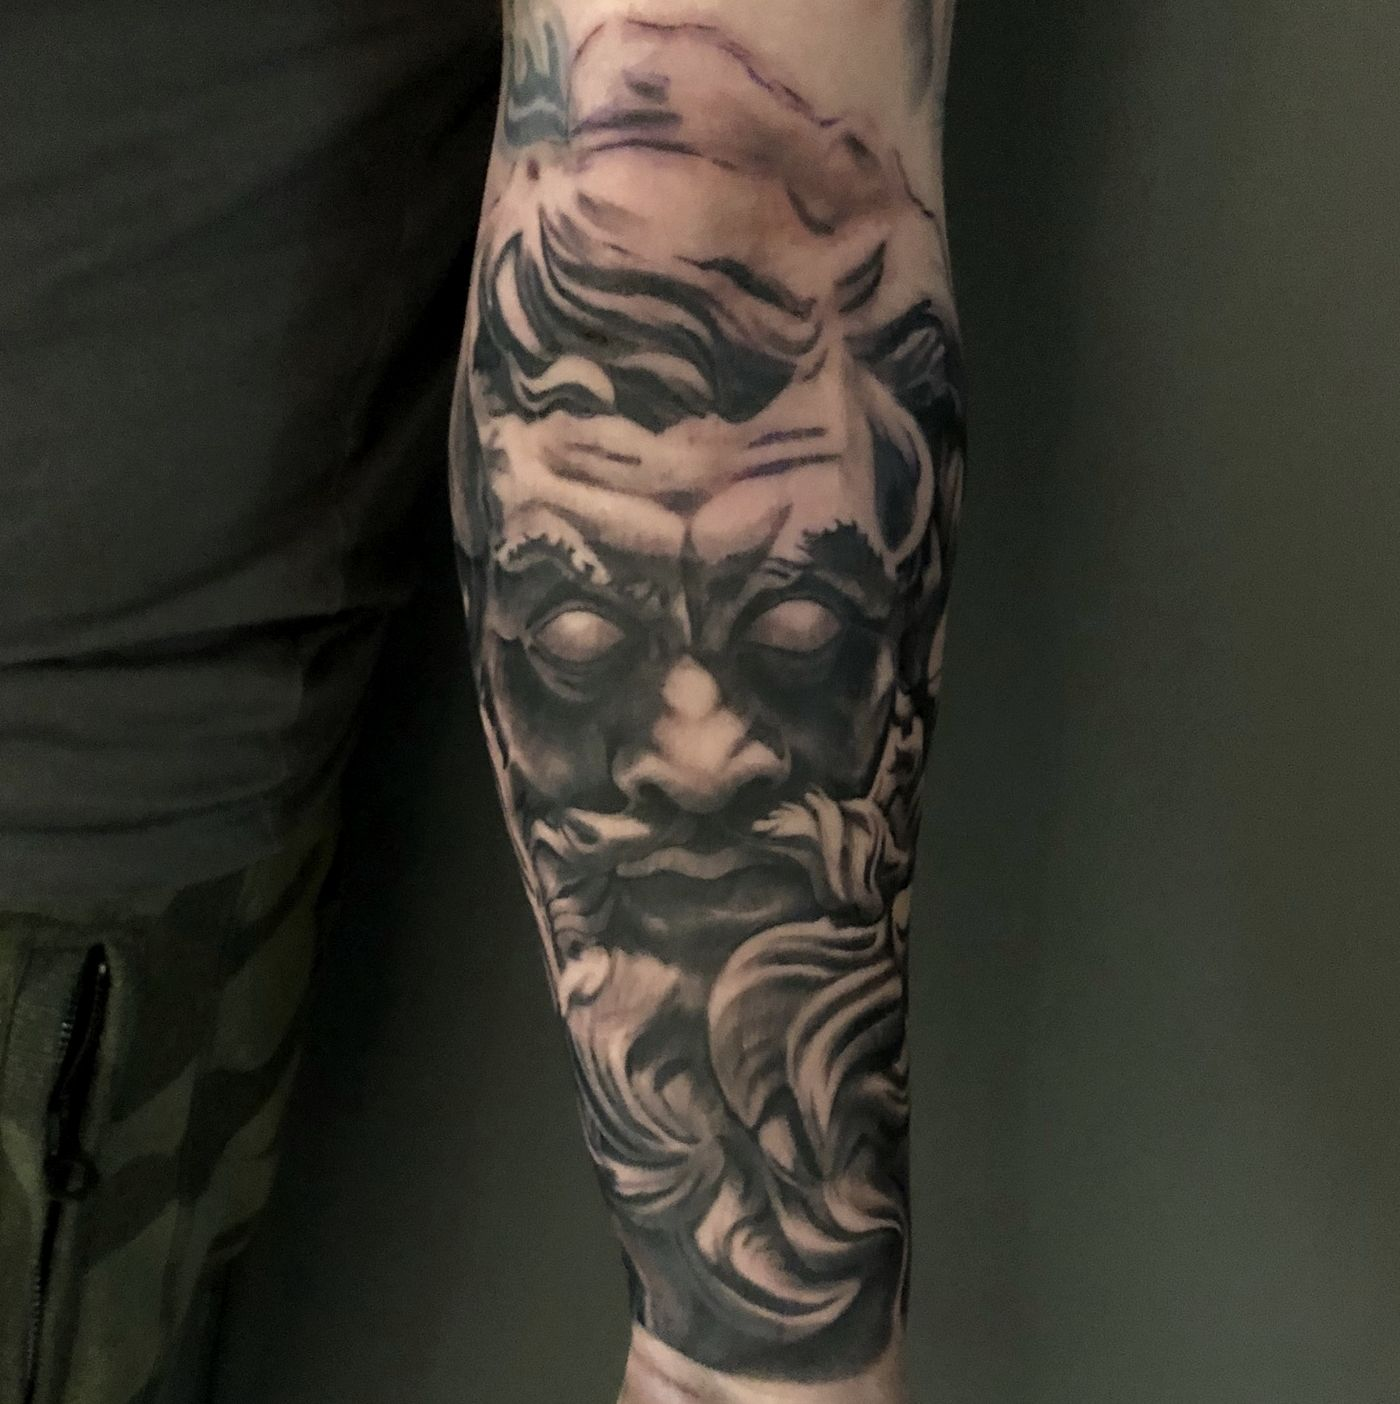 Ancient statue of Zeus sleeve arm tattoo in black and grey realism, London, UK | #blackandgreytattoos #realistictattoos #sleevetattoos #sculpturetattoos #zeustattoo